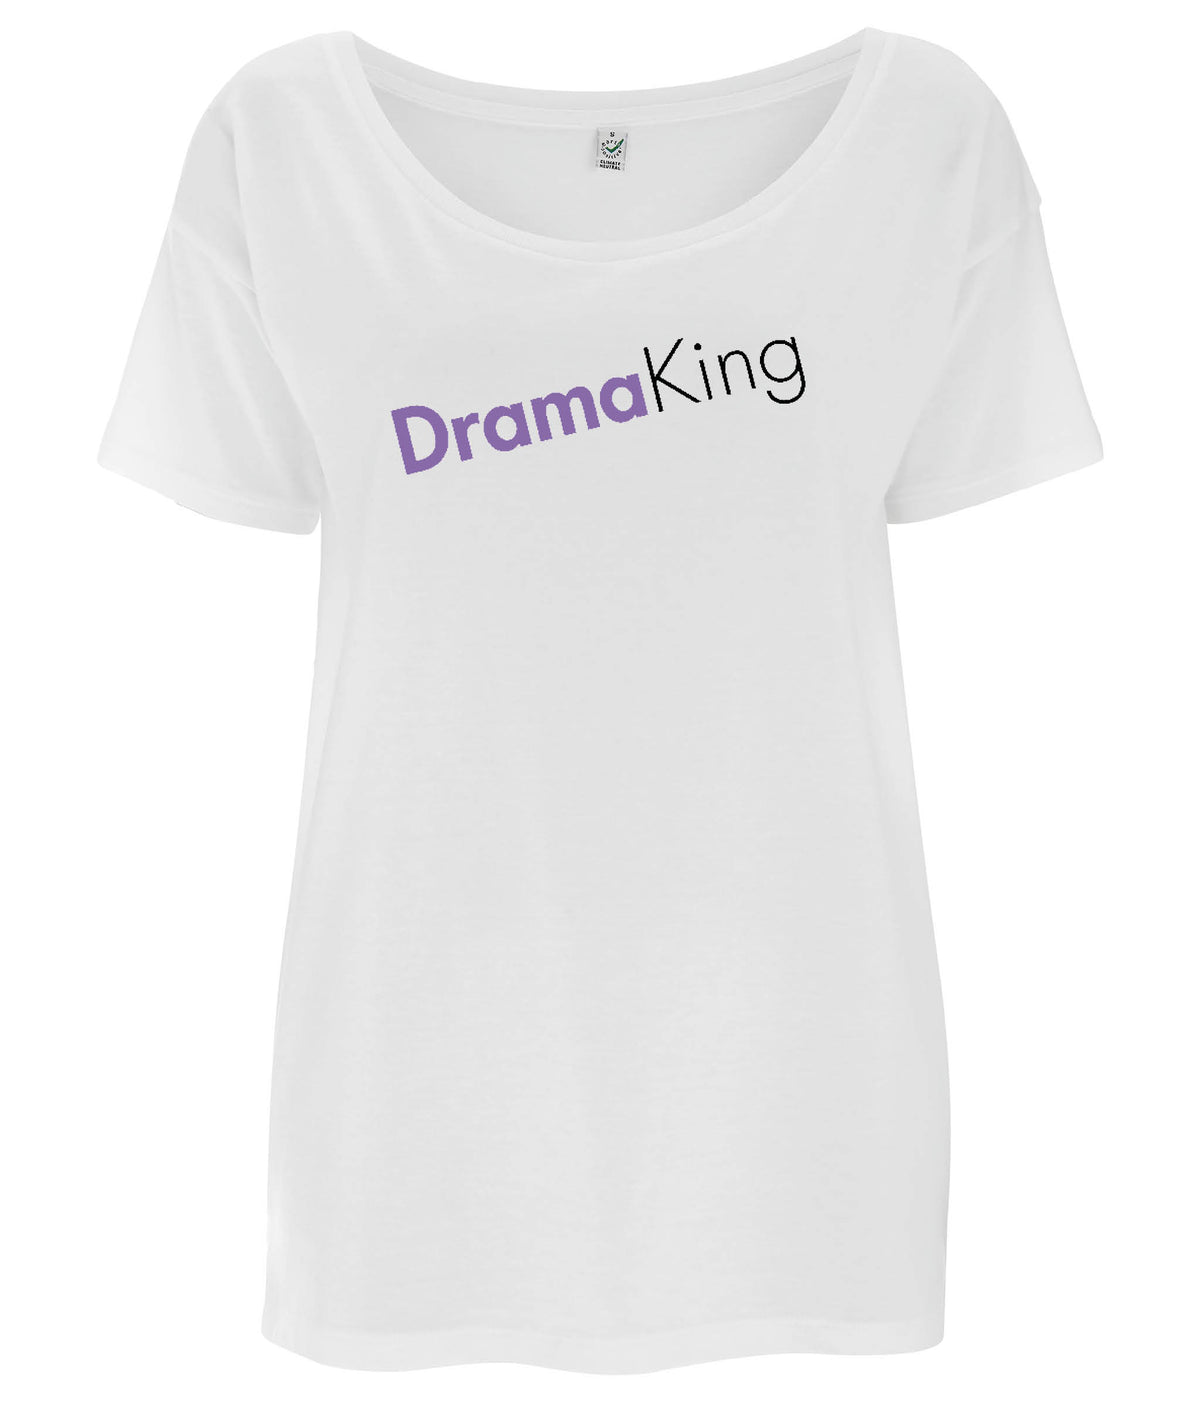 Drama King Tencel Blend Oversized Feminist T Shirt White